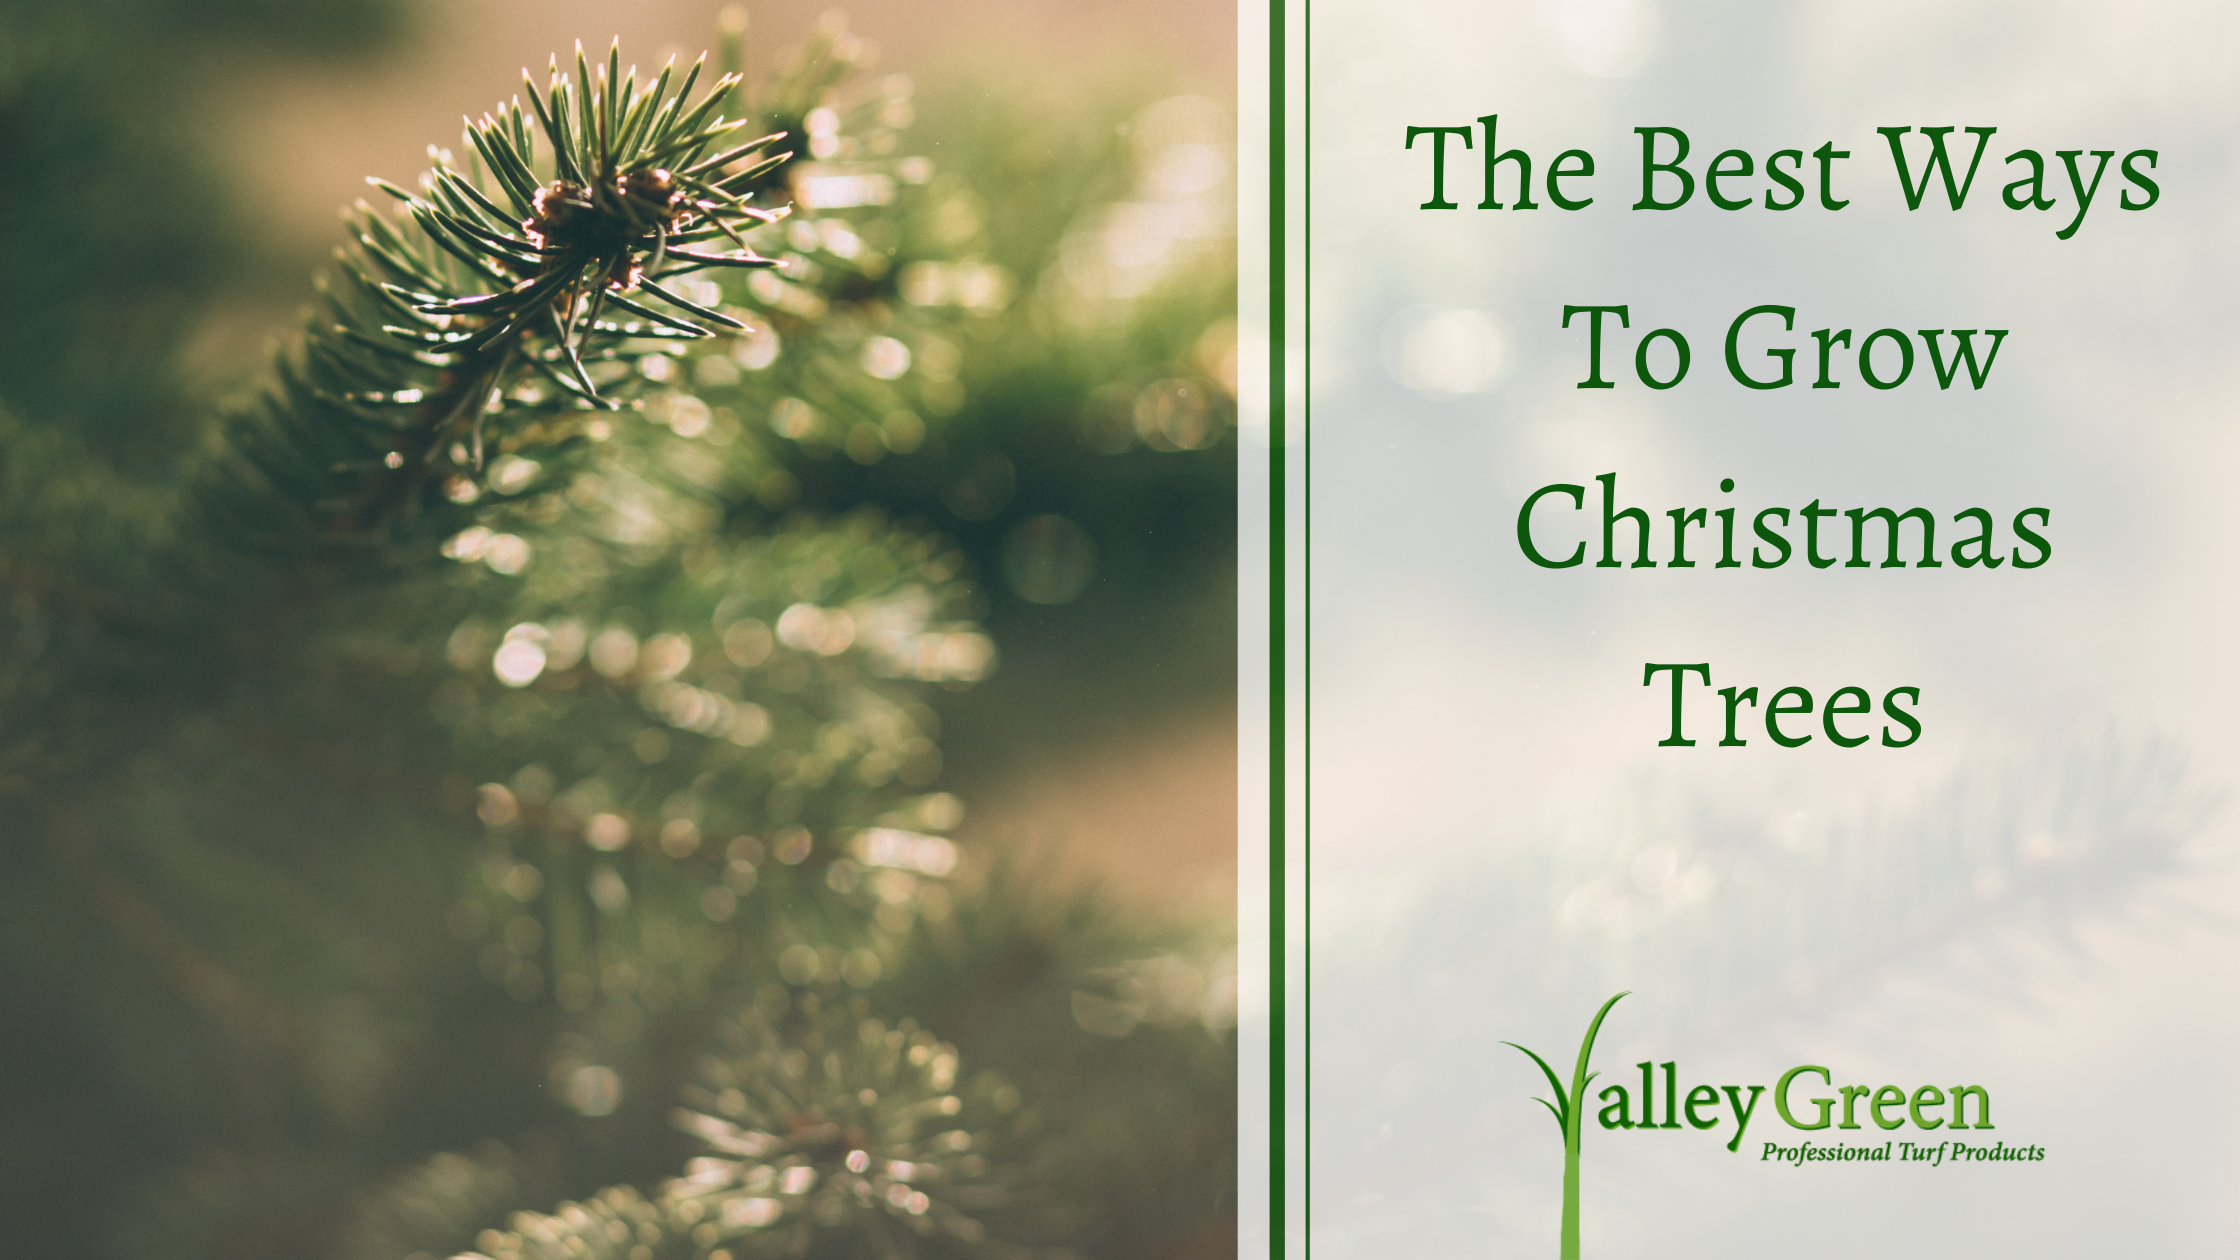 The Best Ways To Grow Christmas Trees